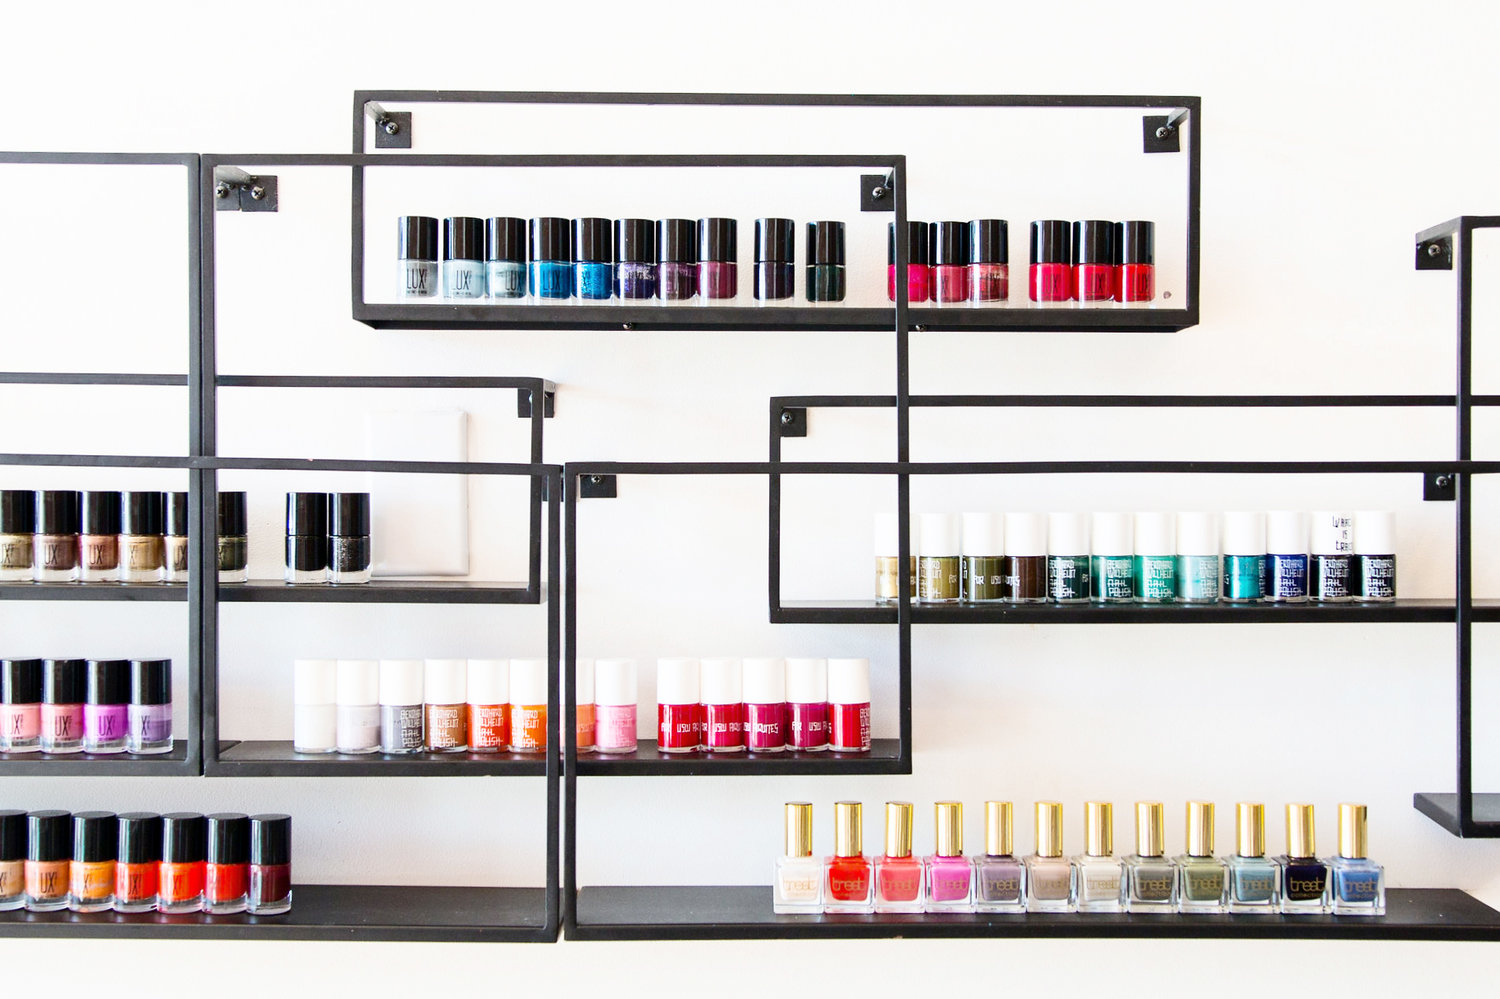 10 Healthy Nail Salons in San Francisco Against The Toxic